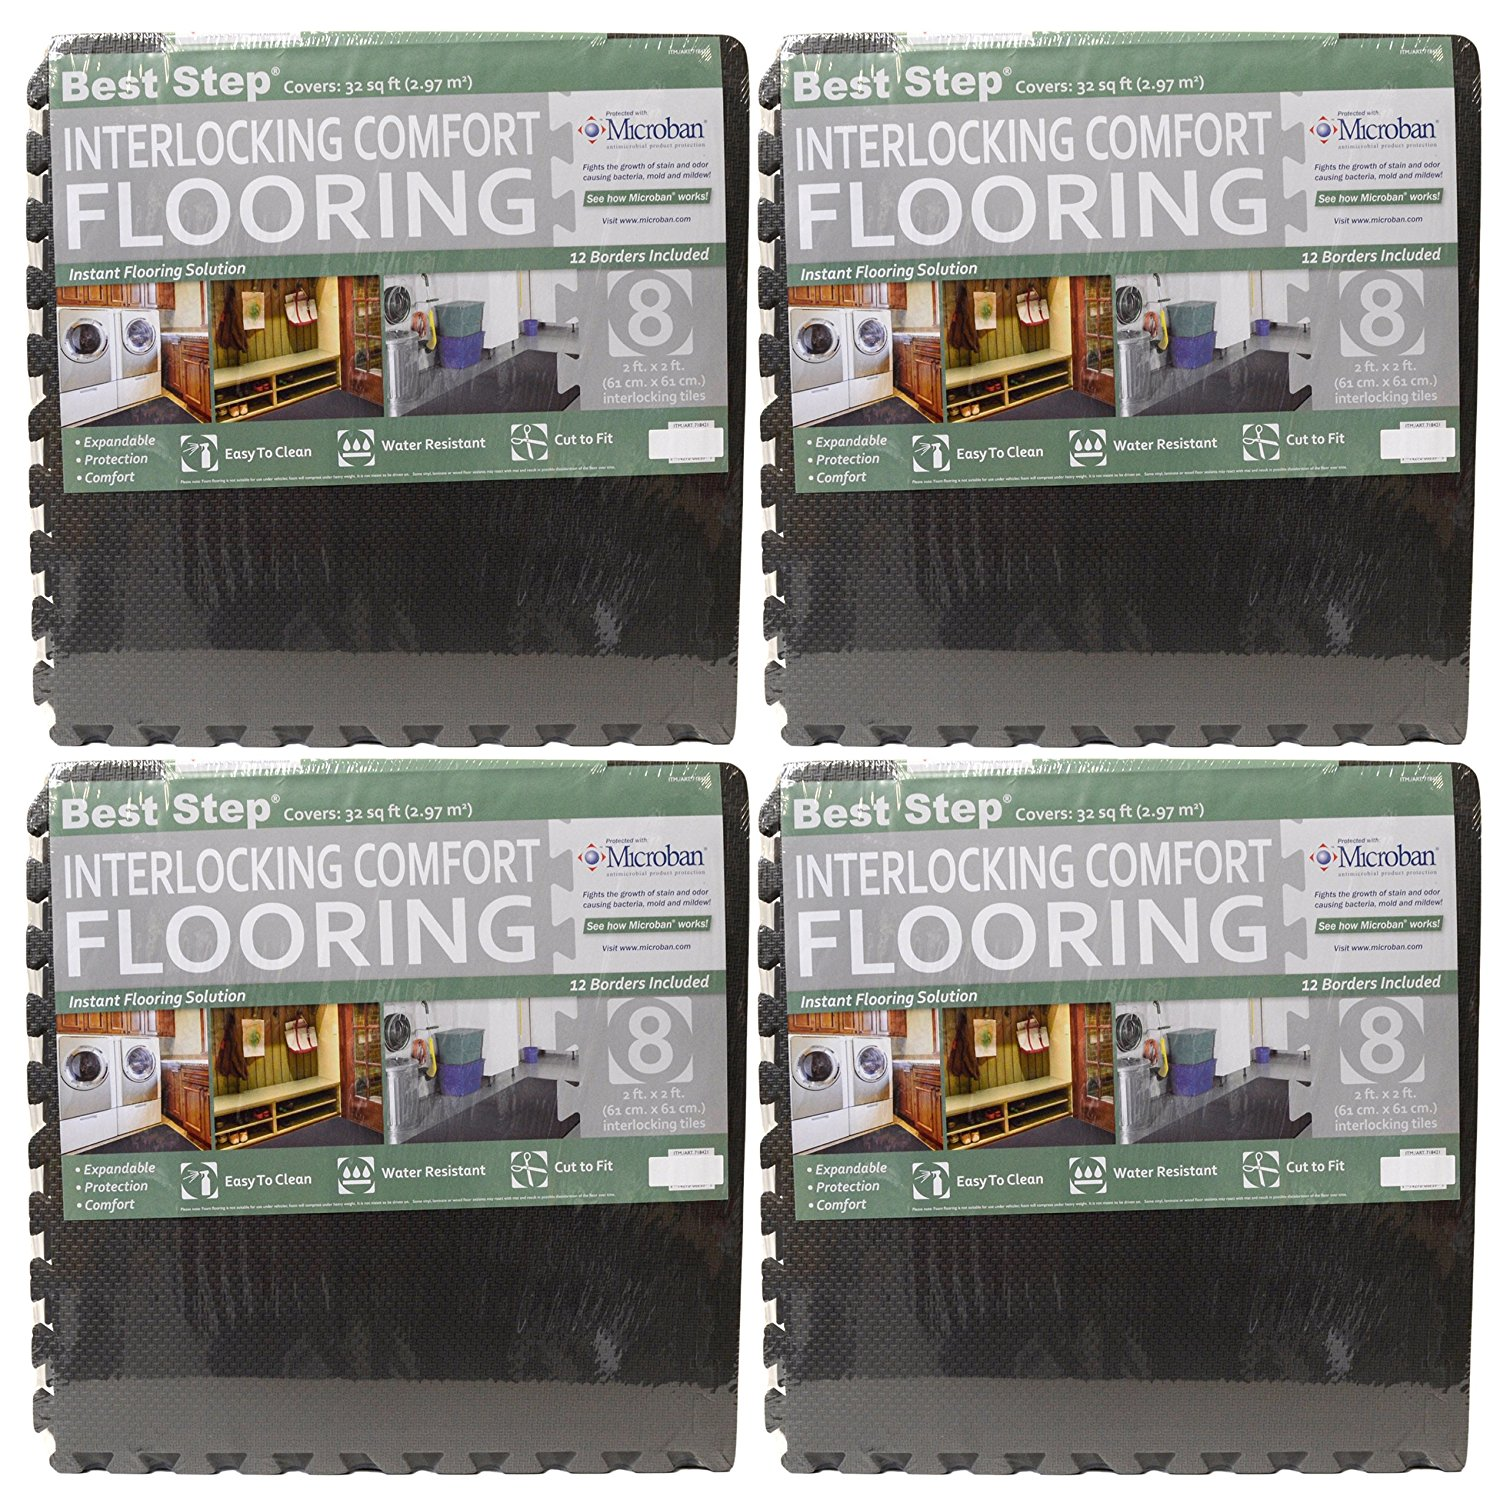 Interlocking comfort flooring 8 pack plus borders 2 x 2 x 38 8 pack plus borders 2 x 2 x 38 one pack of 8 tiles 32 sq ft microban protected charcoal gray foam flooring by best step walmart dailygadgetfo Images